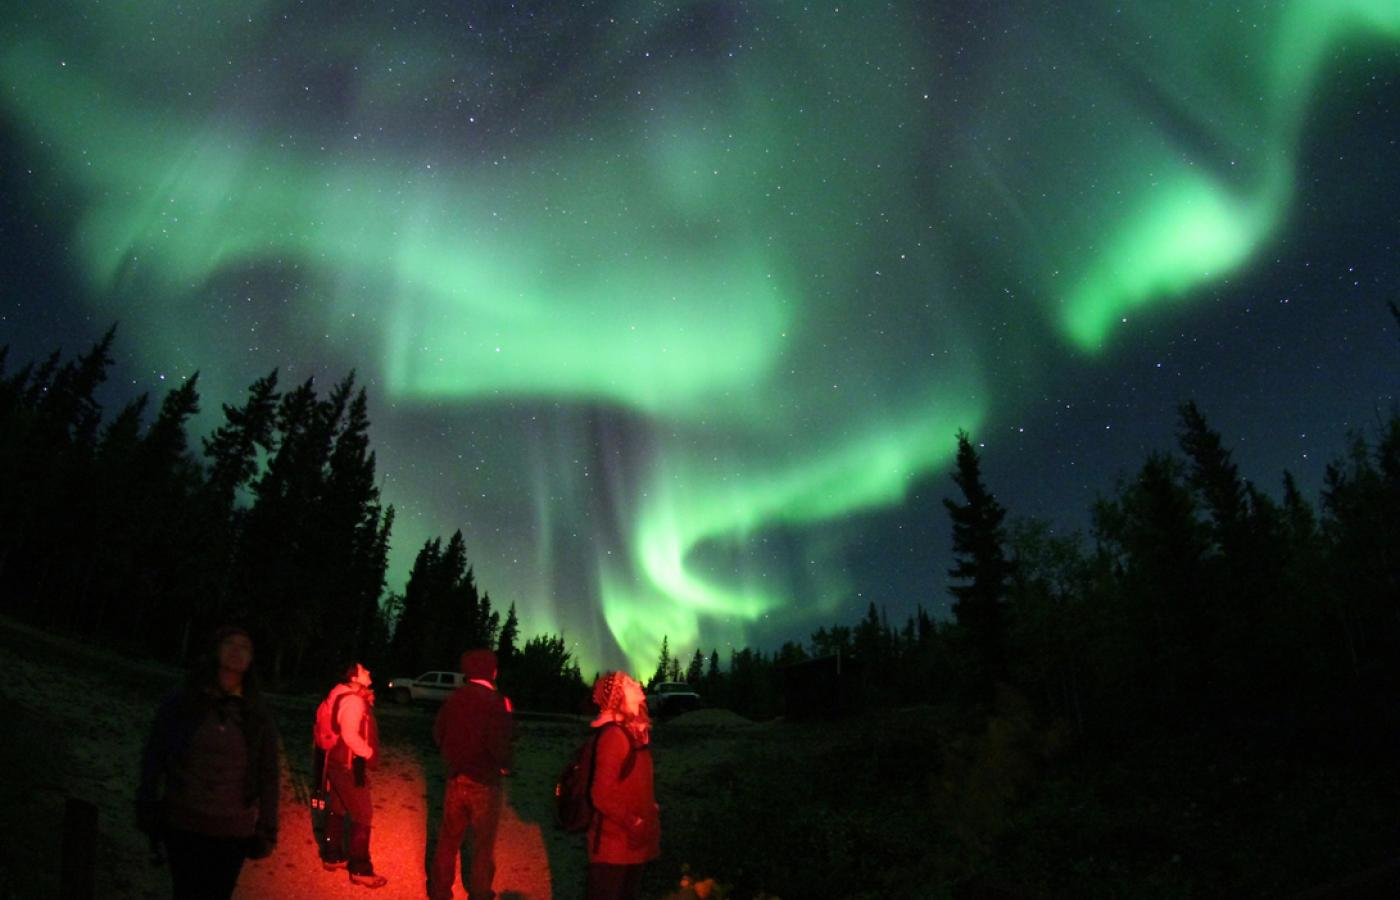 Cosmic storms show in the Northern Lights above Canada's Northwest Territories.